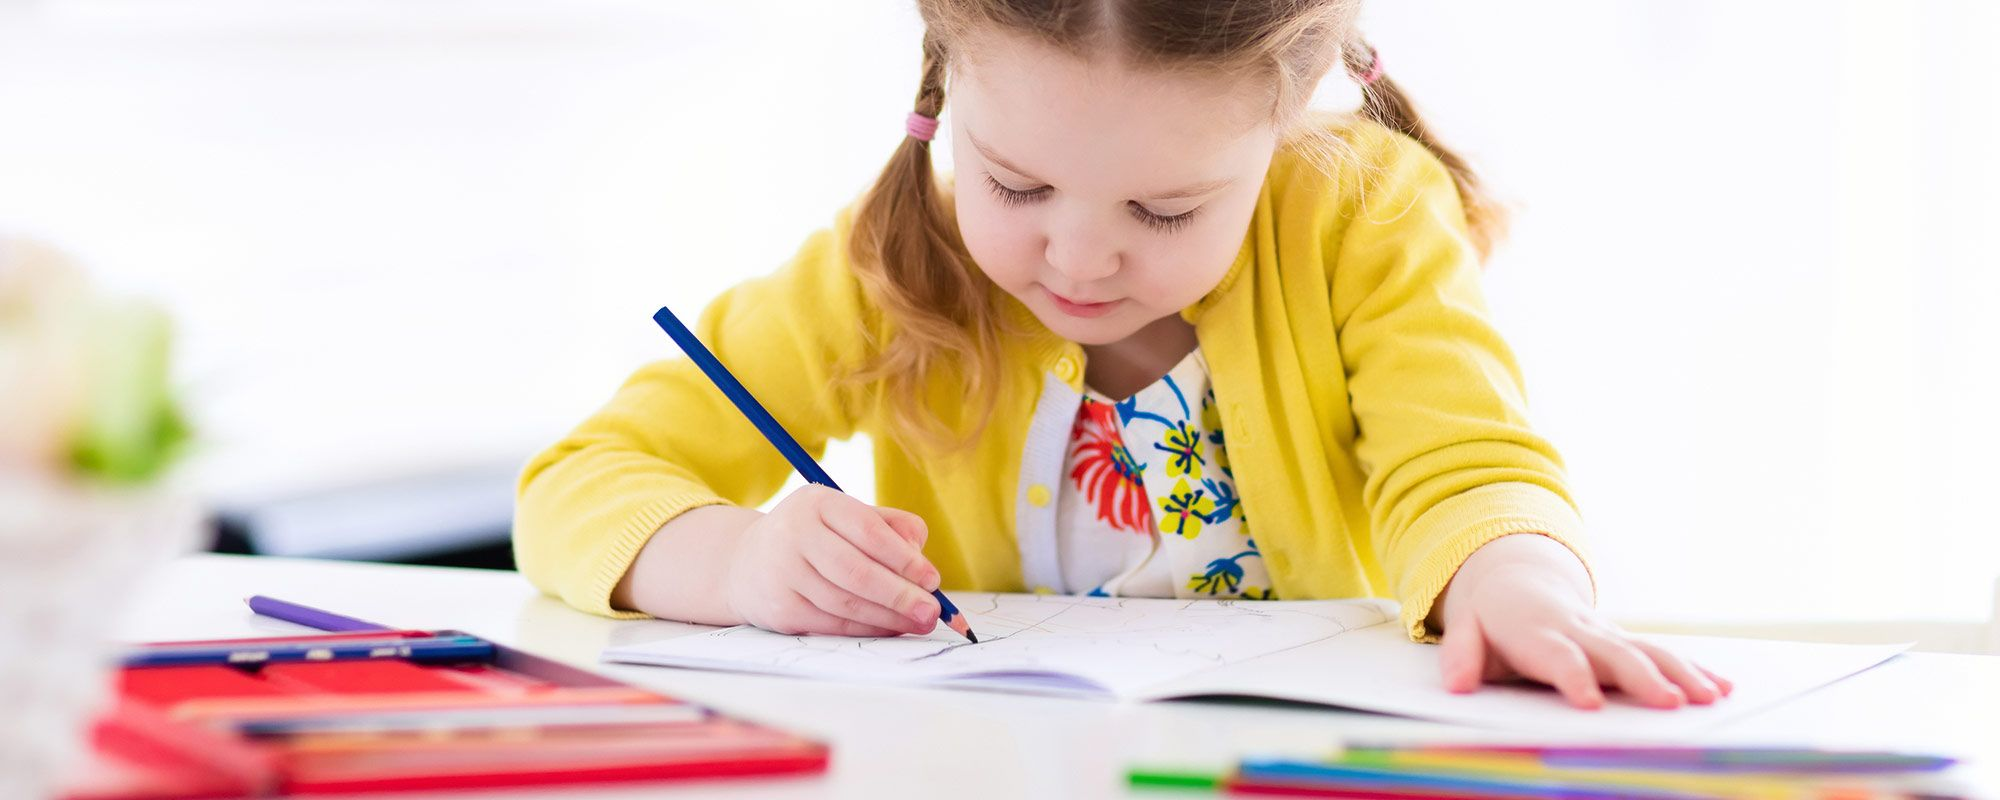 Does your child have trouble cutting, writing or holding a pencil correctly?